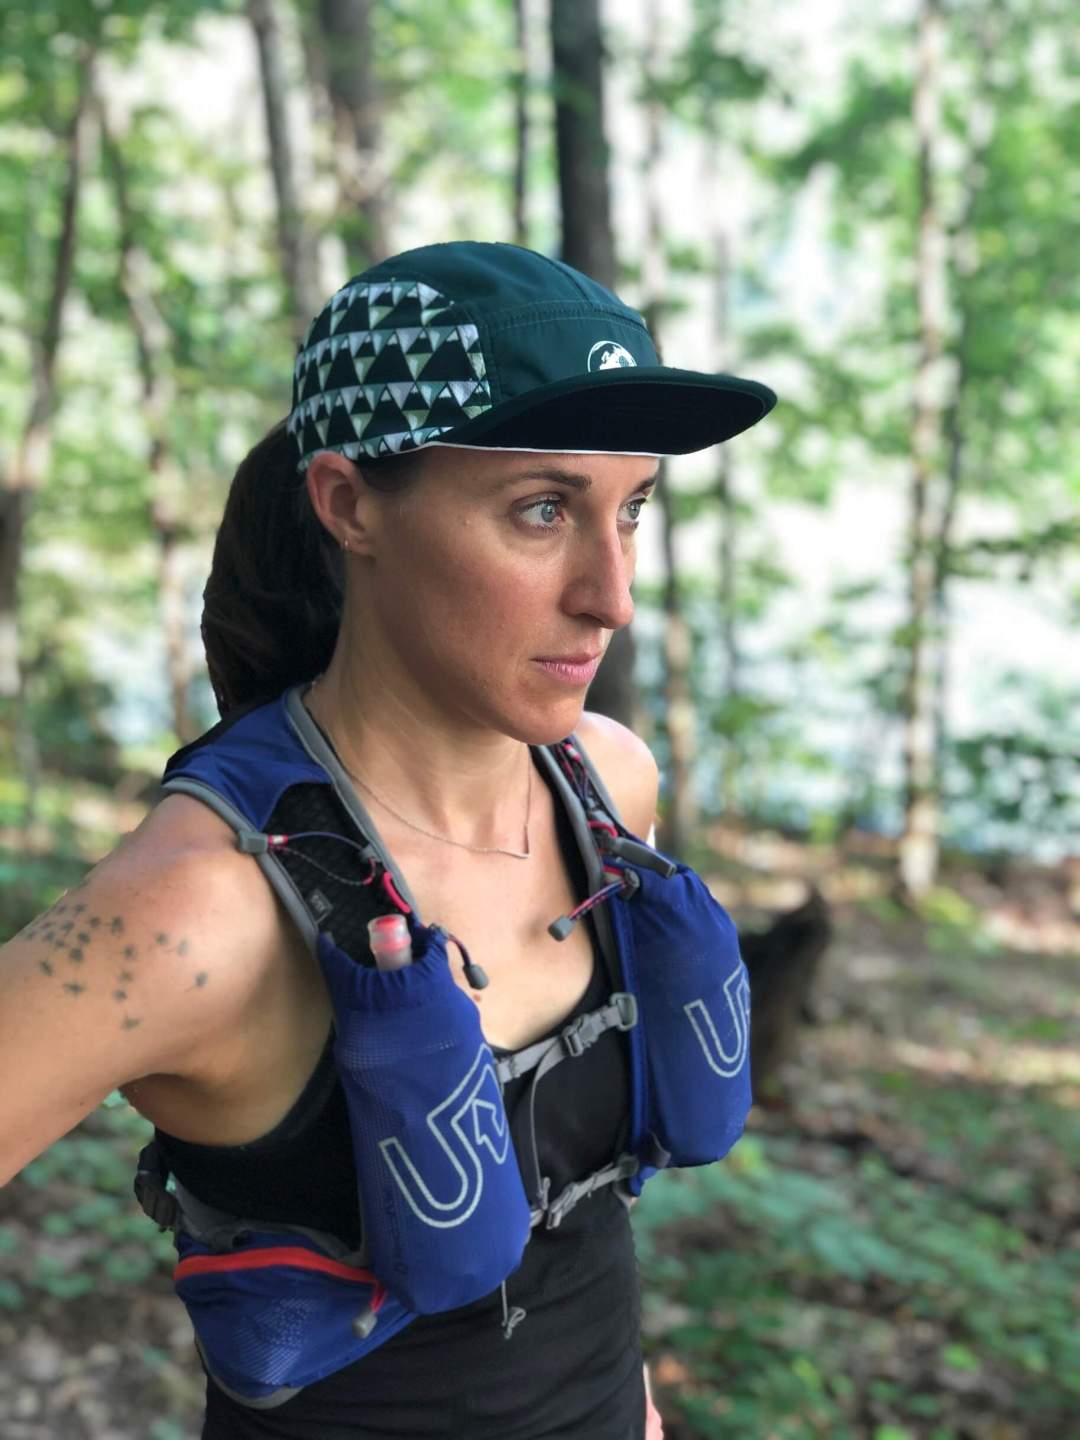 Ultrarunning logo hats by Wicked Trail